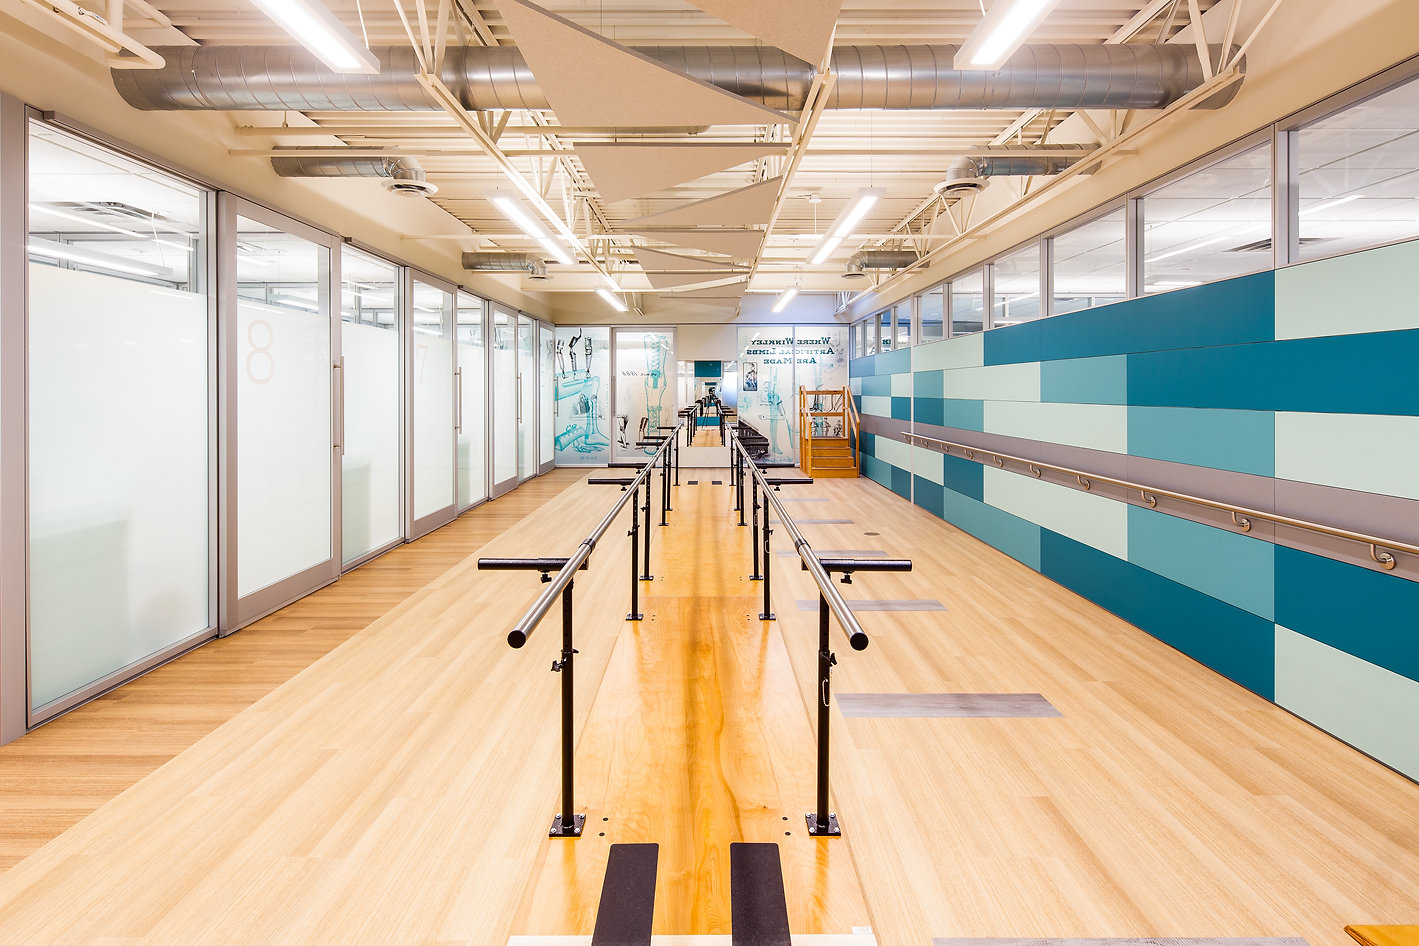 winkley orthotics and prosthetics photo of gait gym, parallel bars, patient rooms, stairs, big area